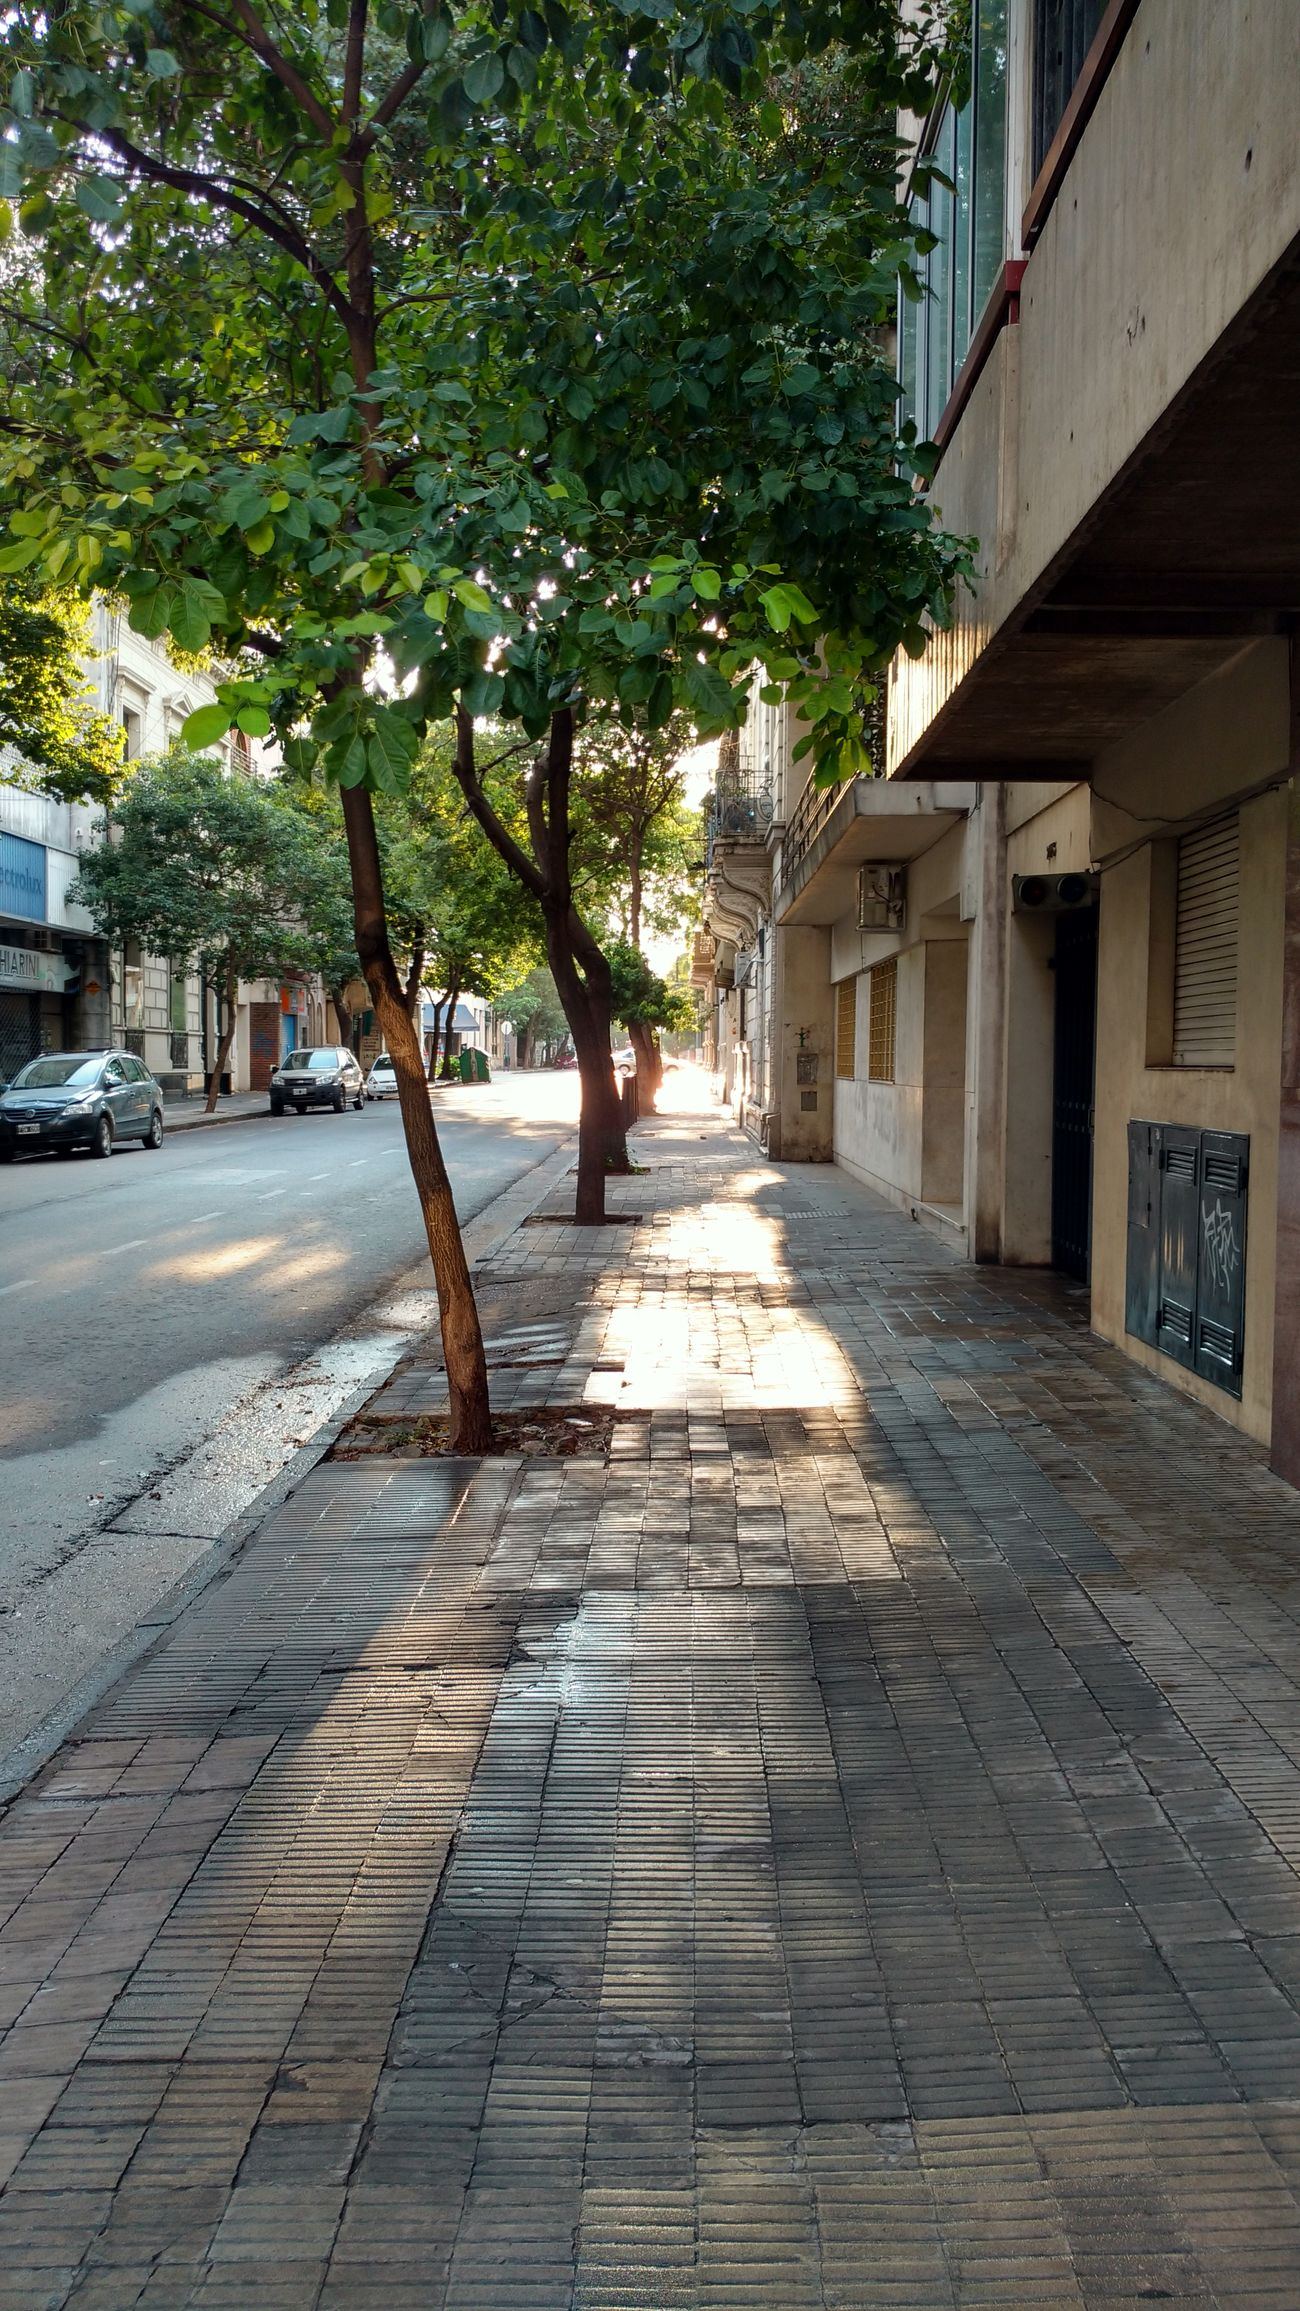 Tree Street Architecture No People City Building Exterior Outdoors Day Rayos De Sol Rays Of Sunshine Rosario, Argentina Moorning! Rosario, Santa Fe RosarioCity Moornig_capture Moornig_time